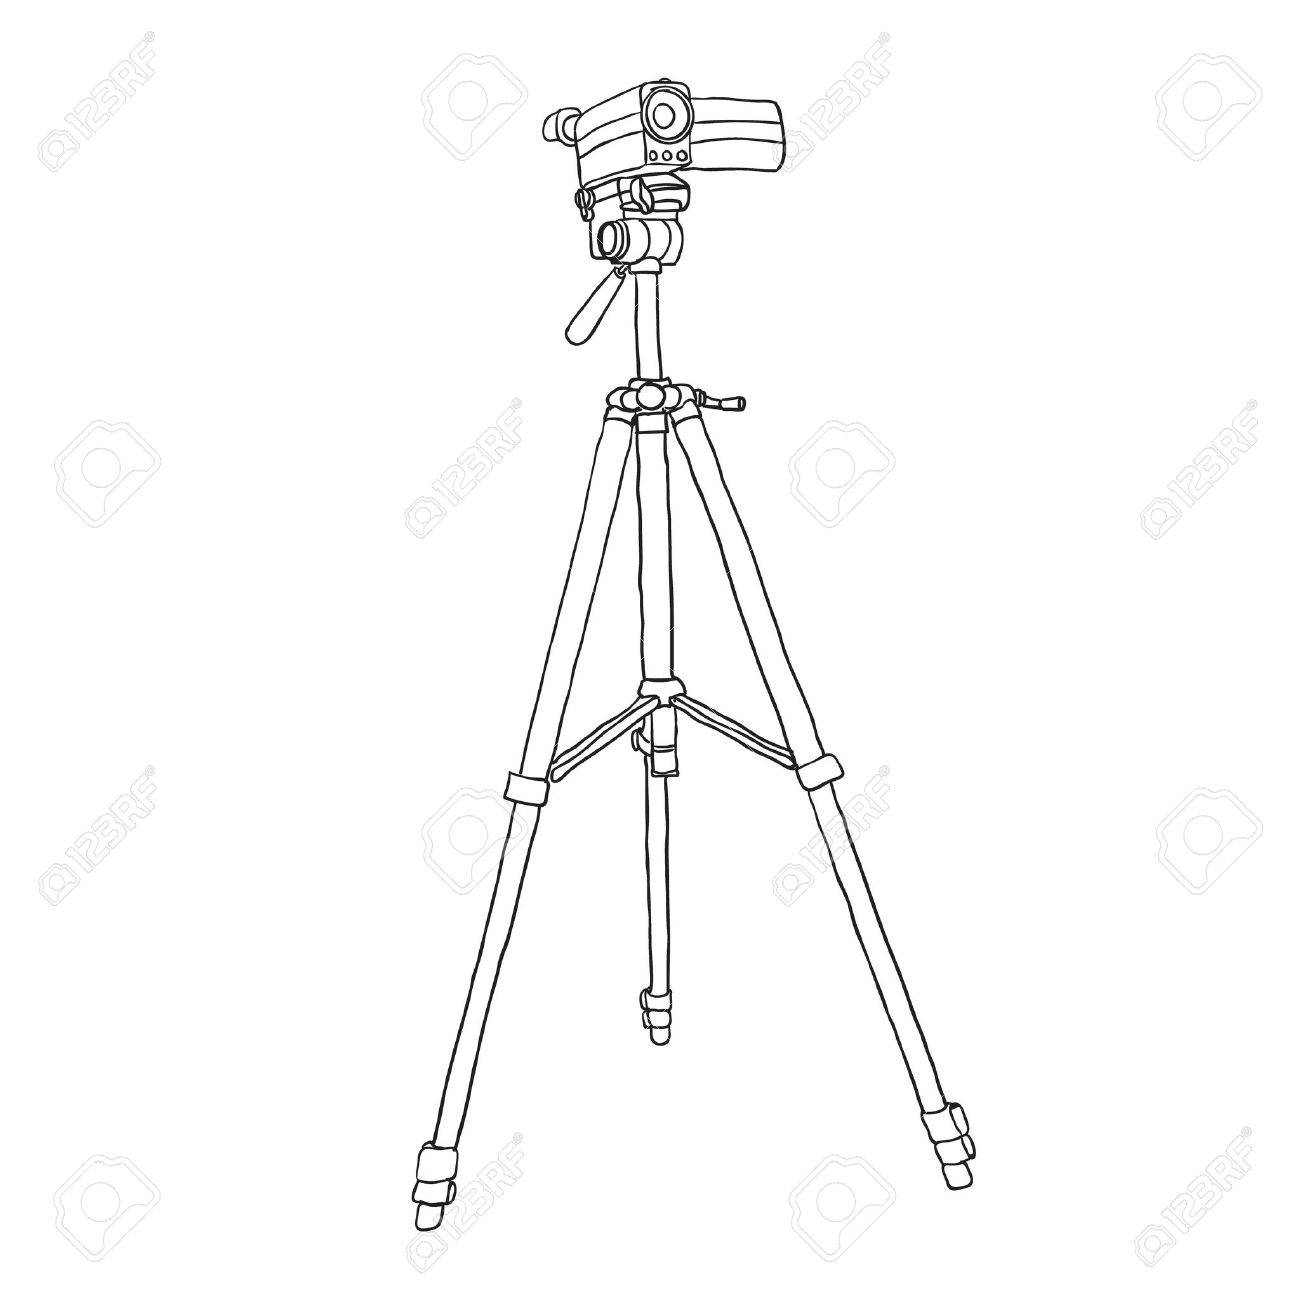 1300x1300 Camcorder On A Tripod. Vector Illustration Royalty Free Cliparts